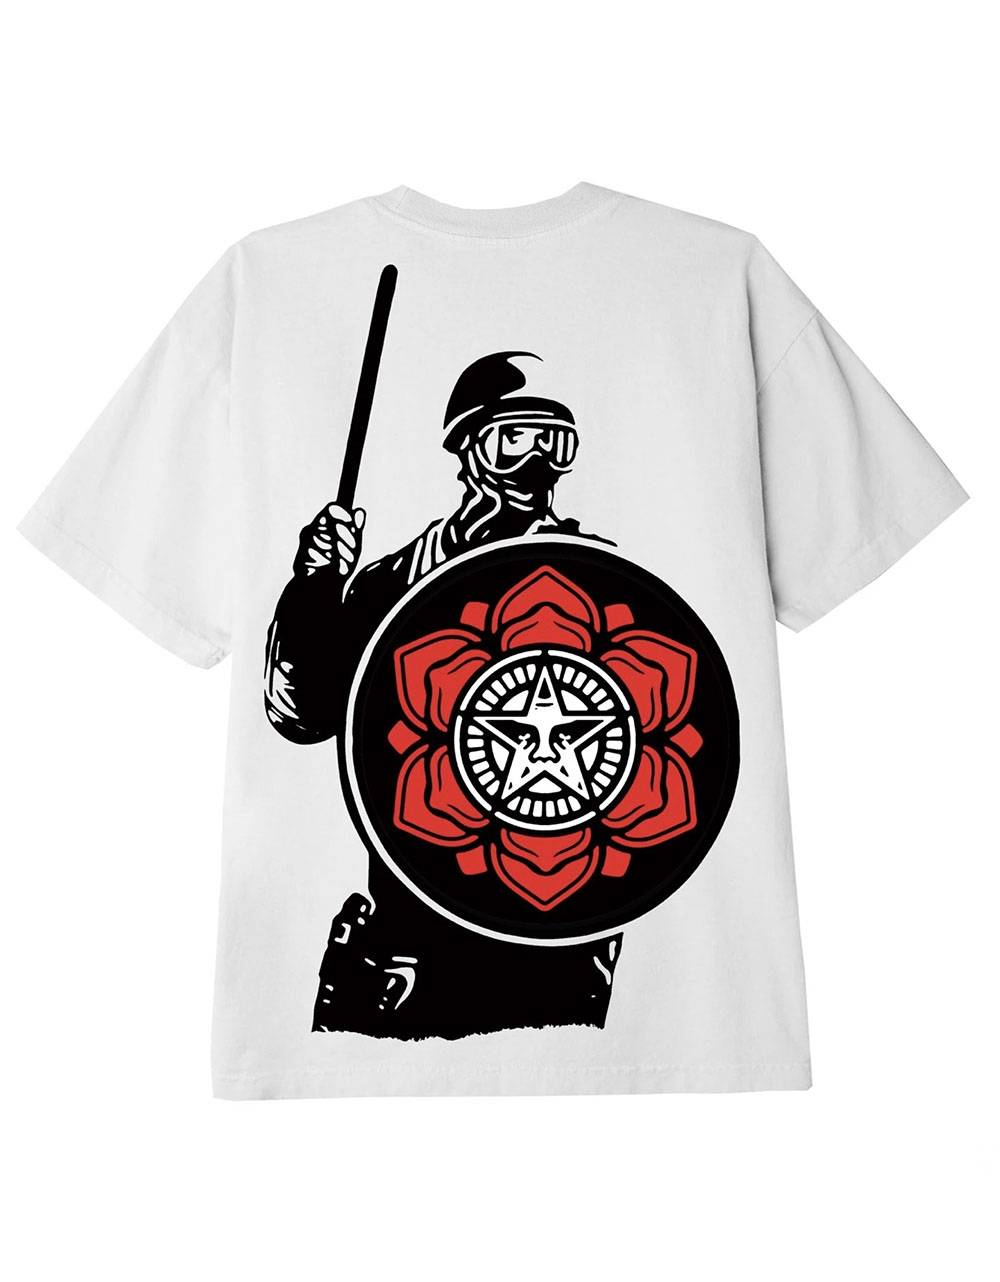 Obey Riot cop peace shield classic t-shirt - white obey T-shirt 36,89€